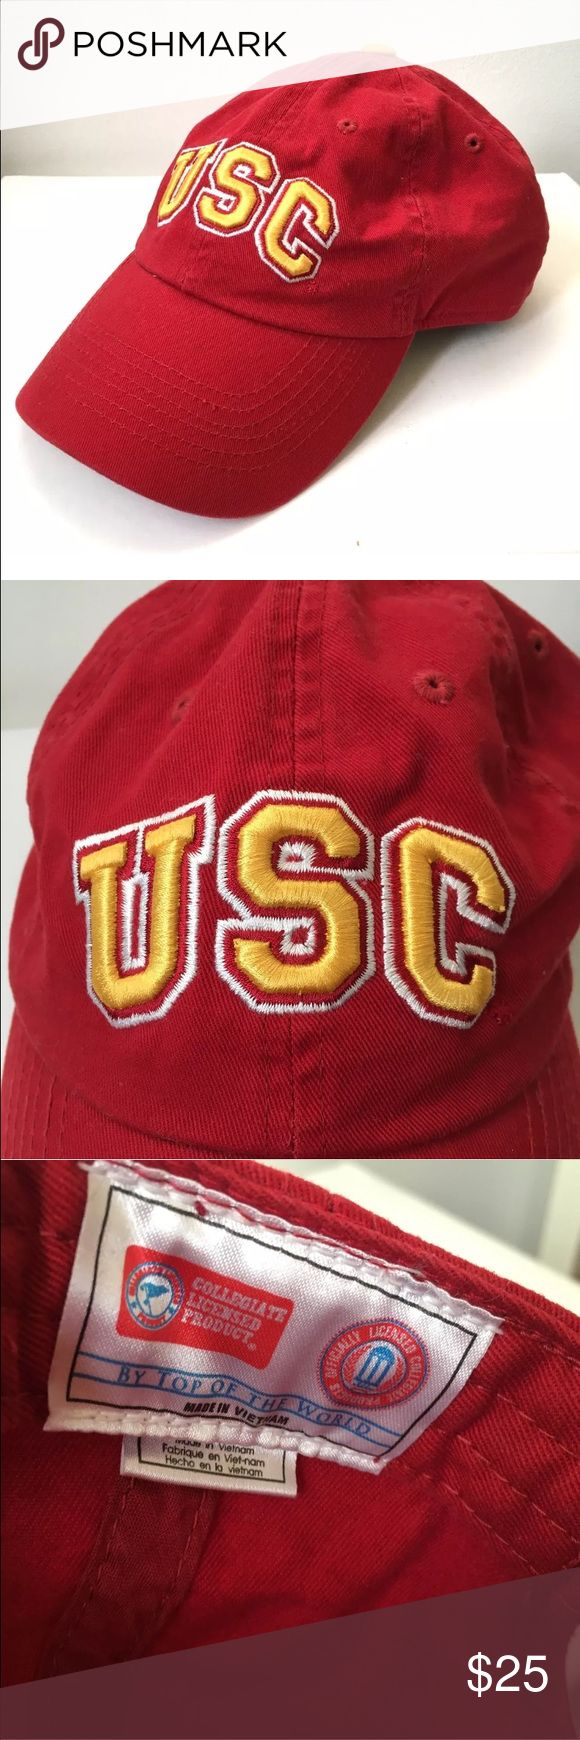 USC college dad hat SnapBack New Excellent like new never worn university of Southern California Trojans Adjustable Snap Back. collegiate  Accessories Hats